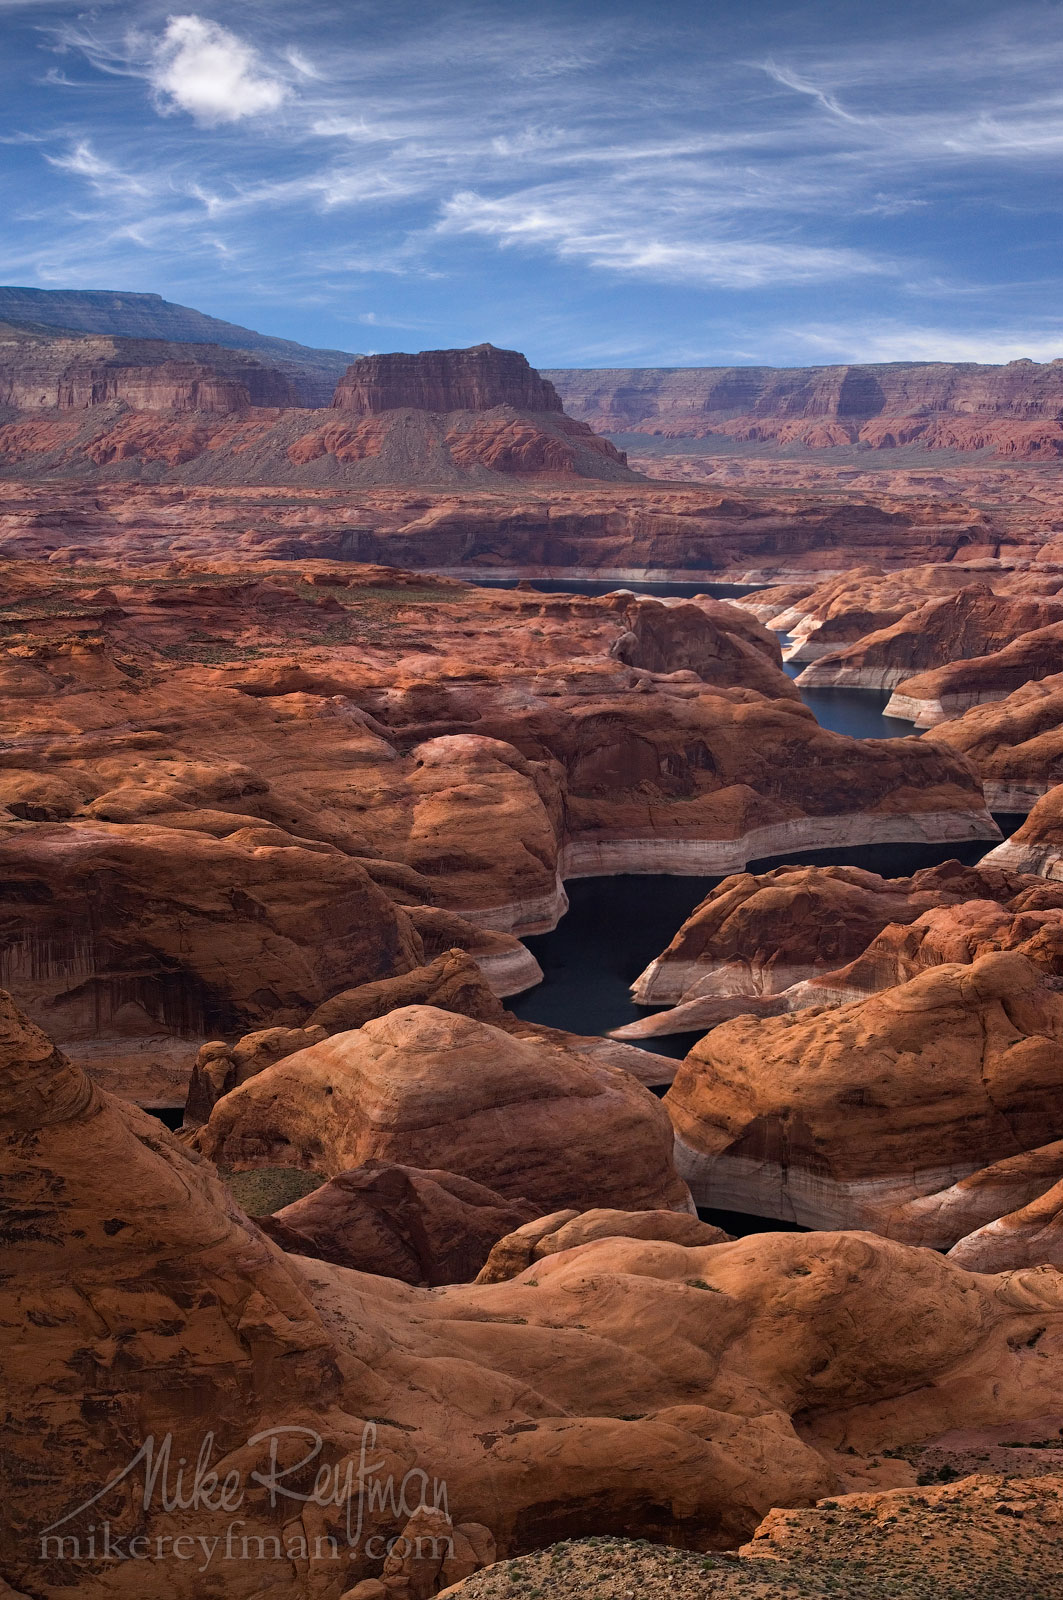 Forbidding Canyon. Glen Canyon NRA, Lake Powell, Utah/Arizona, USA. Aerial. 079-LP3_MER6856.jpg - Lake Powell, Glen Canyon NAR. Colorado and Sun Juan Rivers. Utah/Arizona, USA  - Mike Reyfman Photography